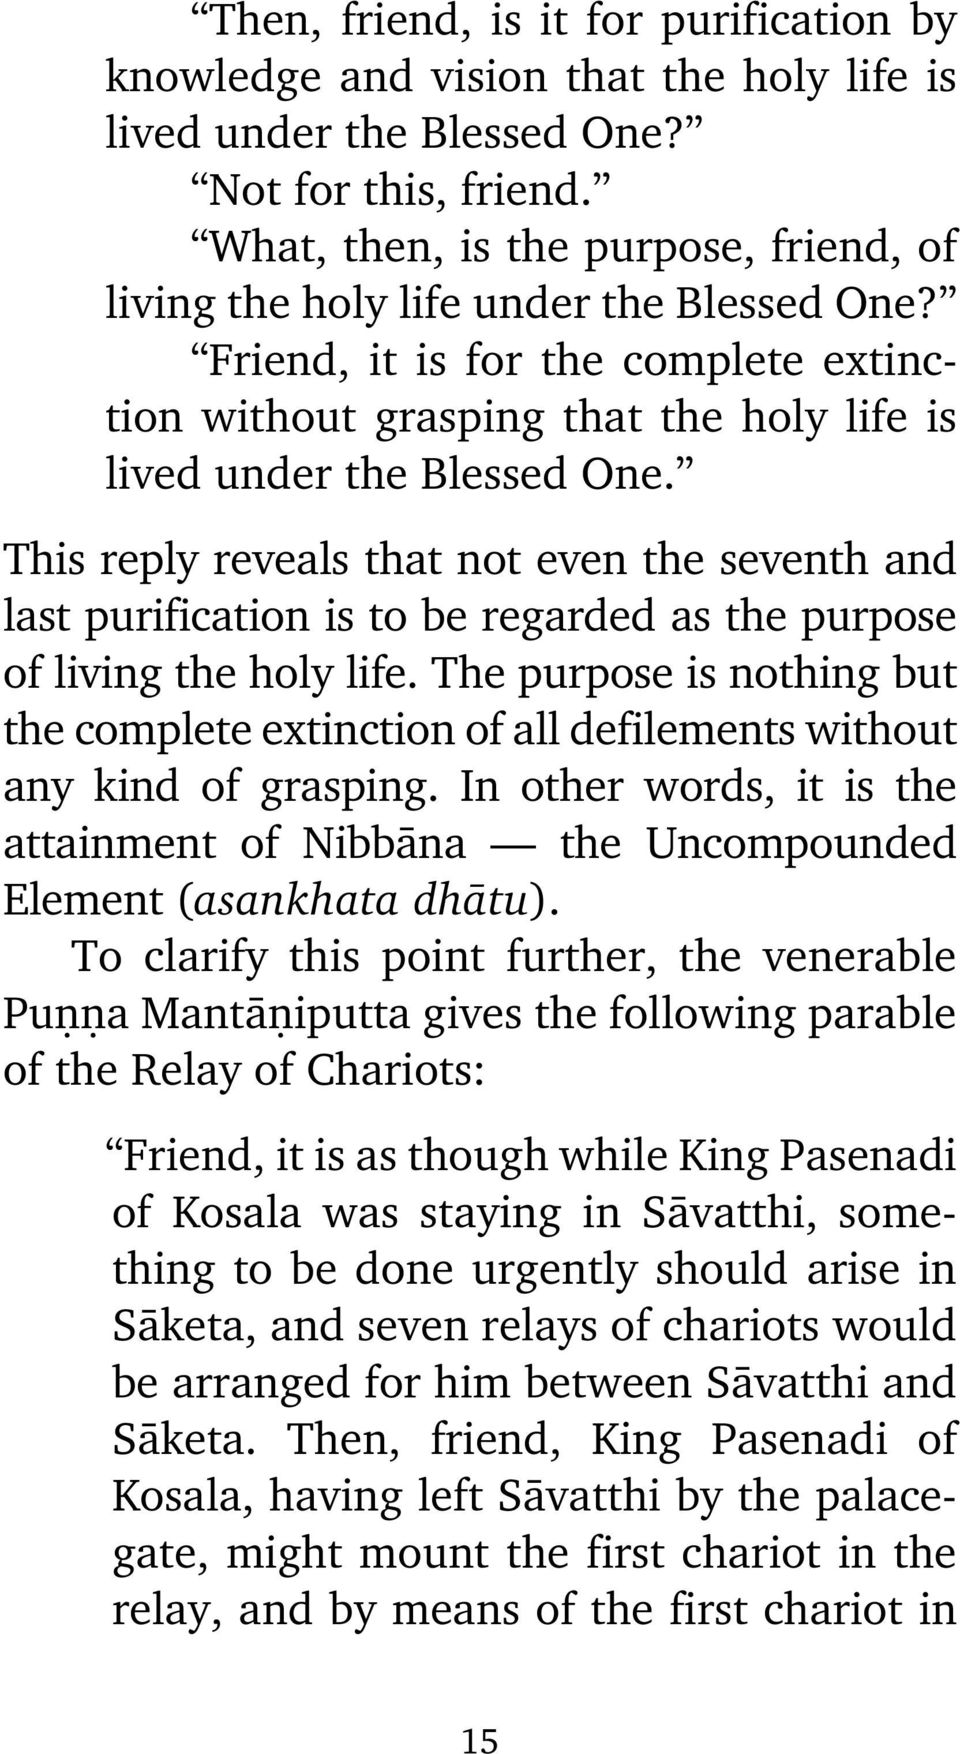 This reply reveals that not even the seventh and last purification is to be regarded as the purpose of living the holy life.